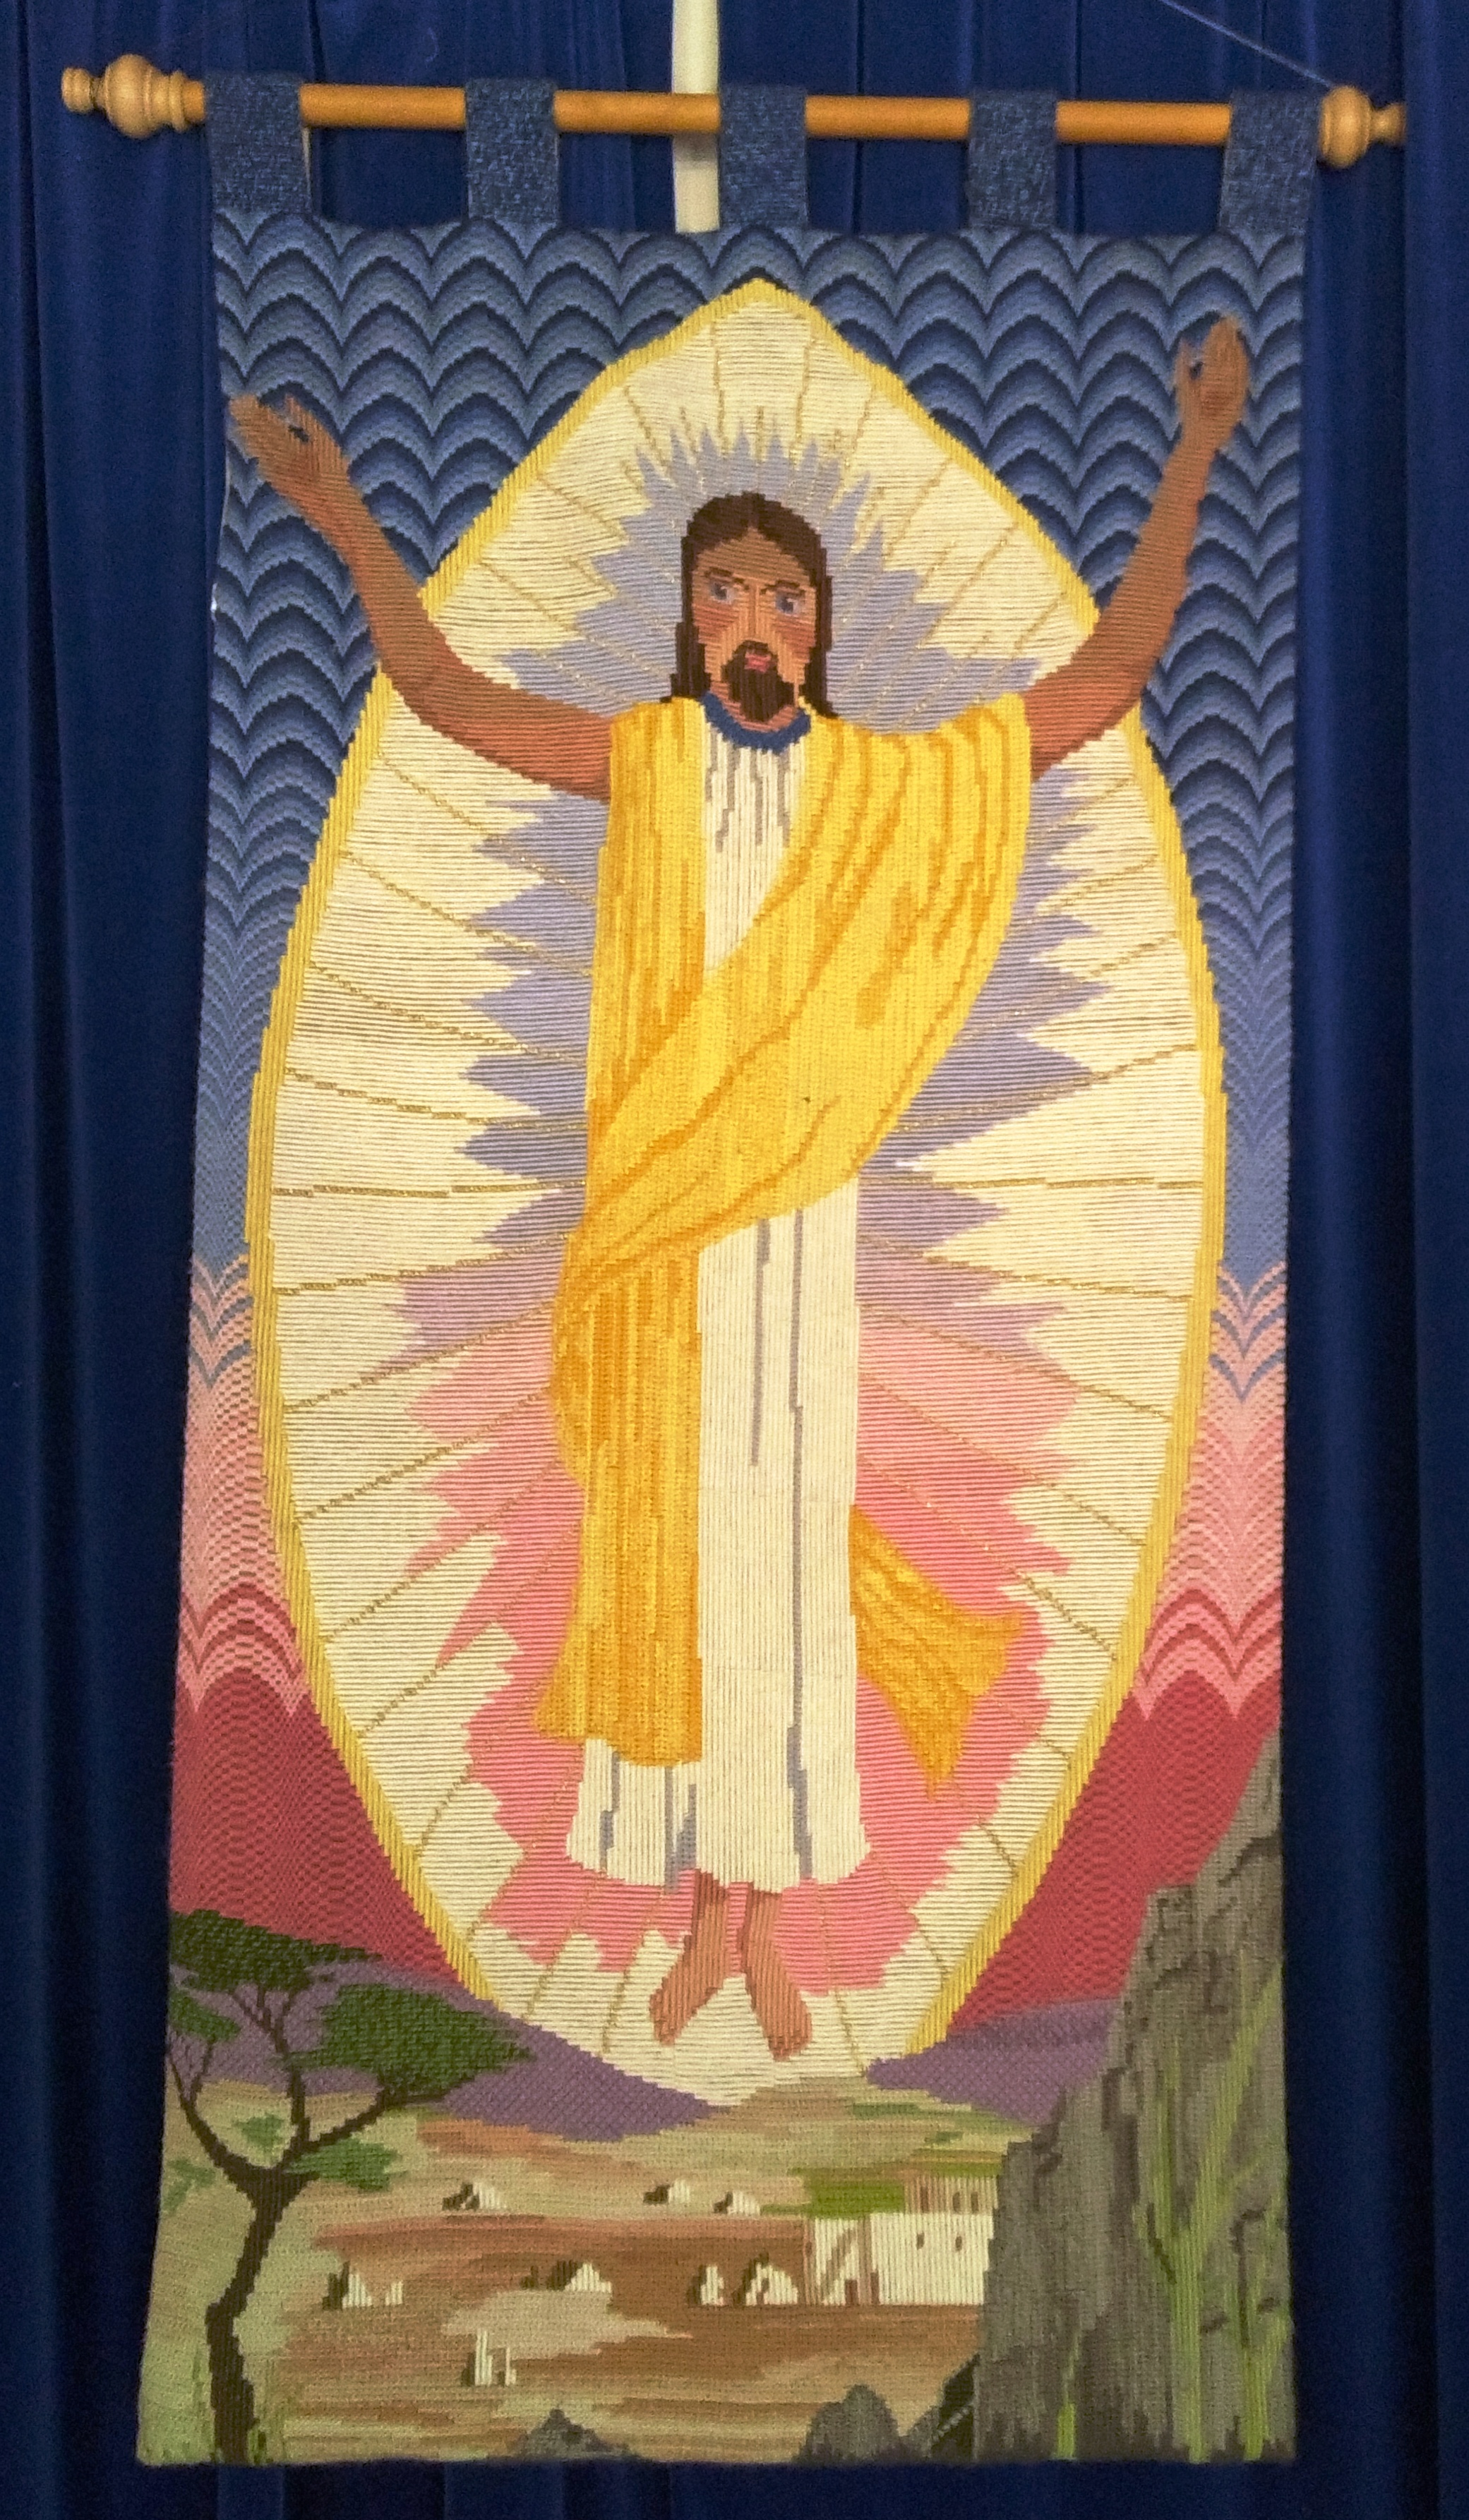 Tapestry of the Risen Christ